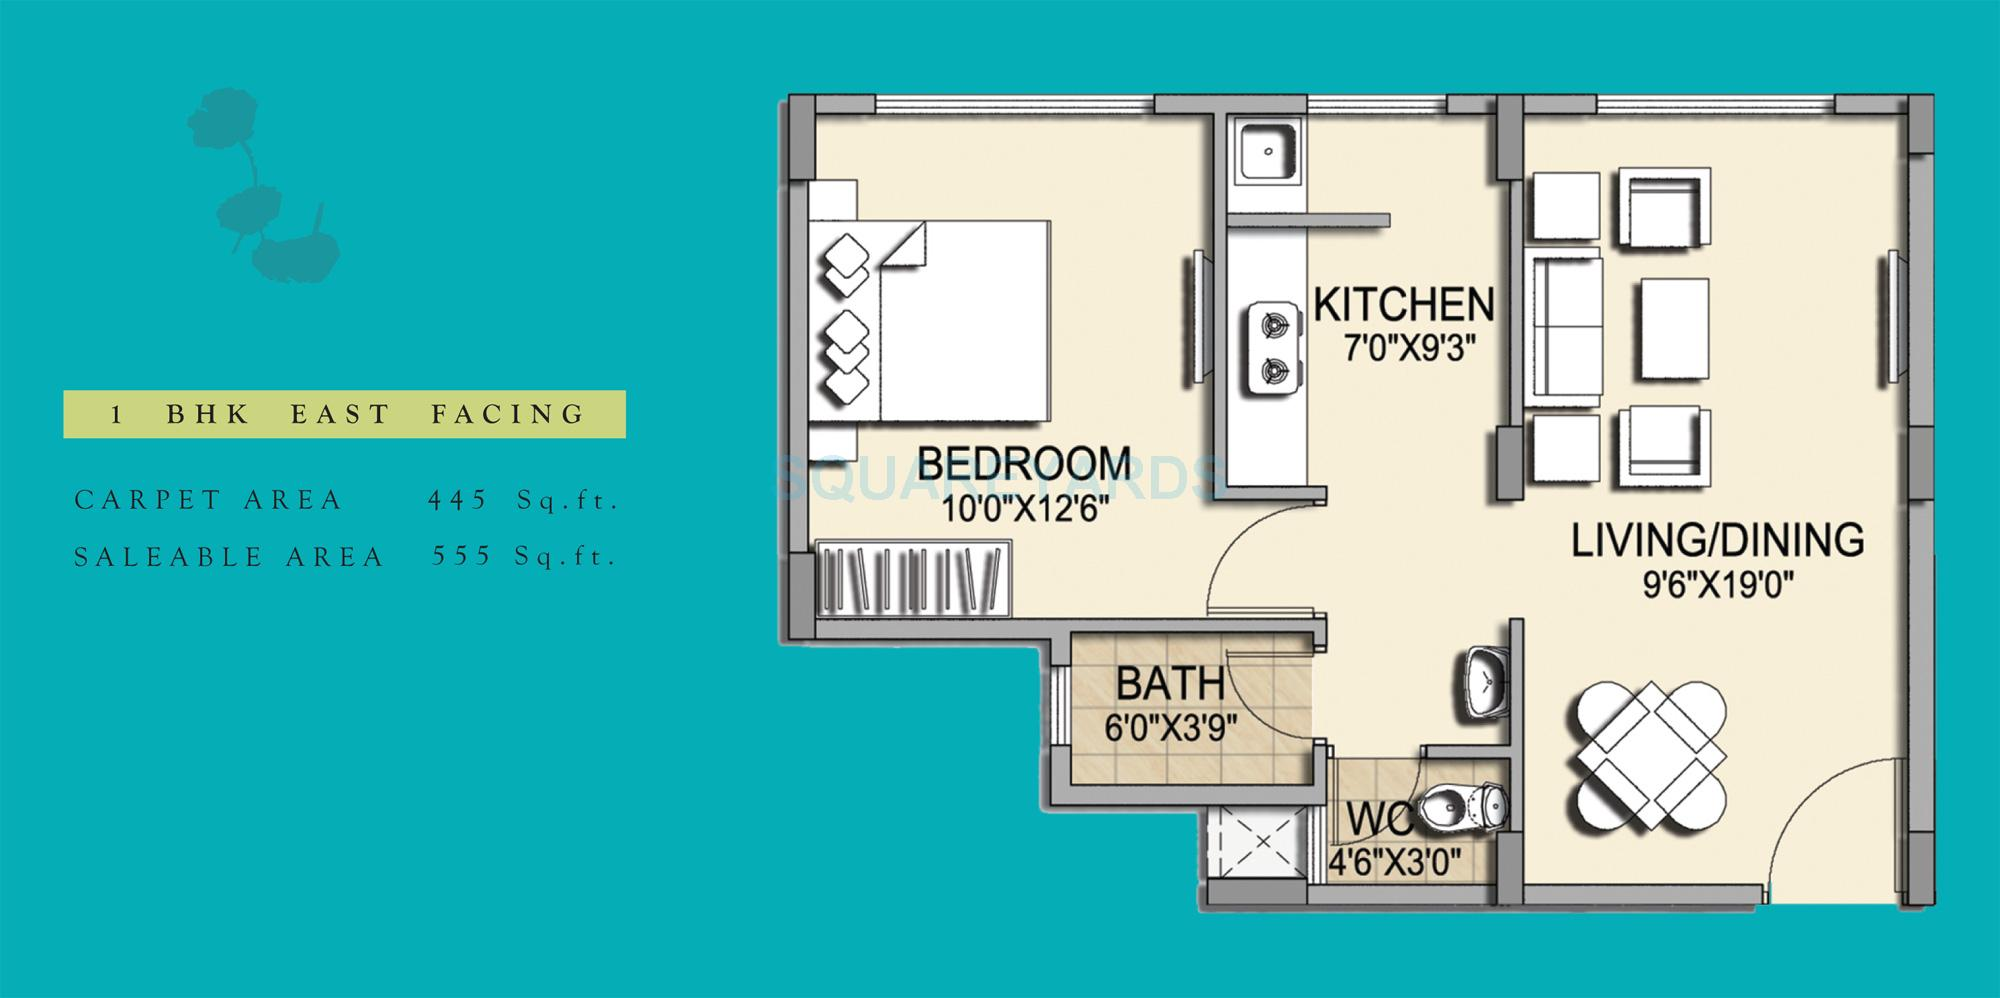 pride horizon apartment 1bhk 555sqft1